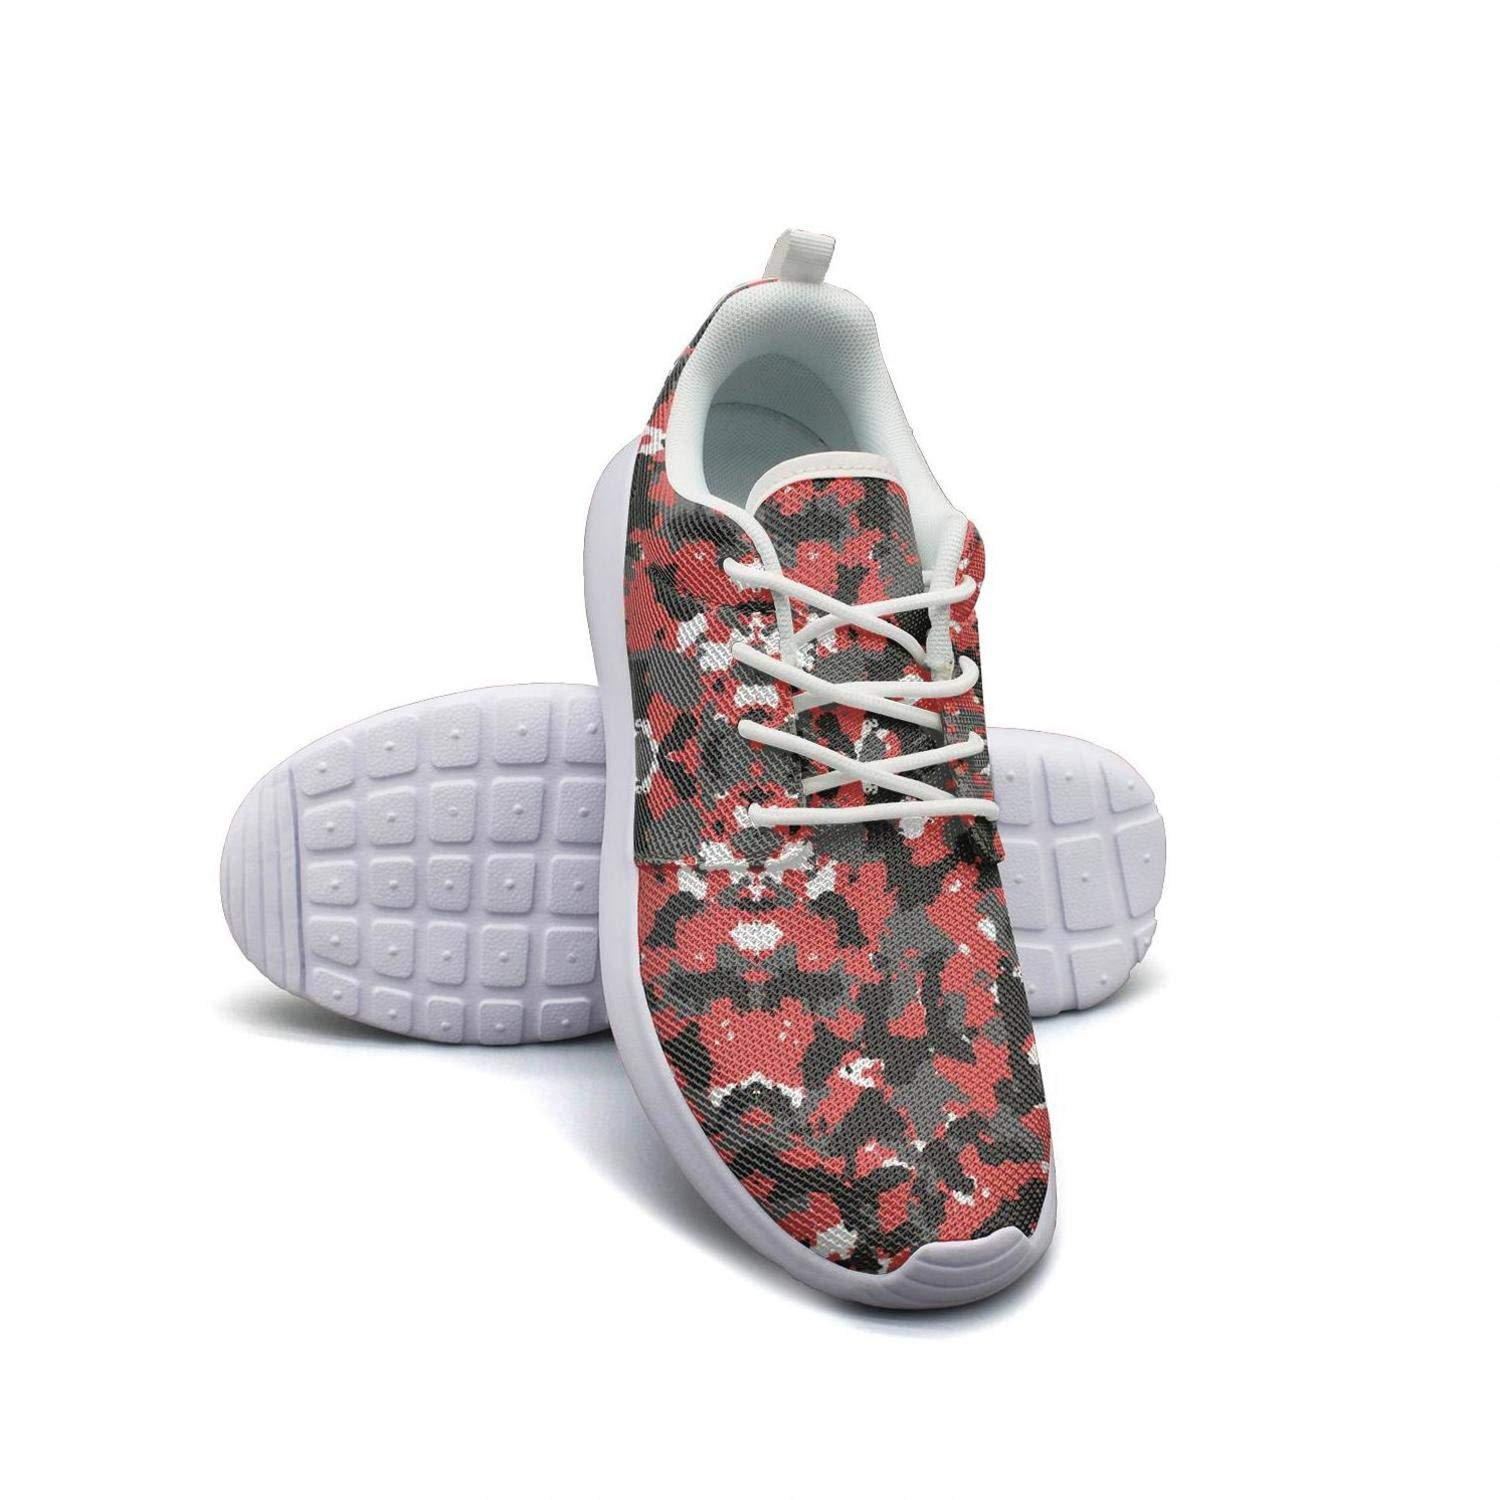 Orange camo flame Casual Shoes for Men slip on Comfortable and Lightweight Male Running Shoes